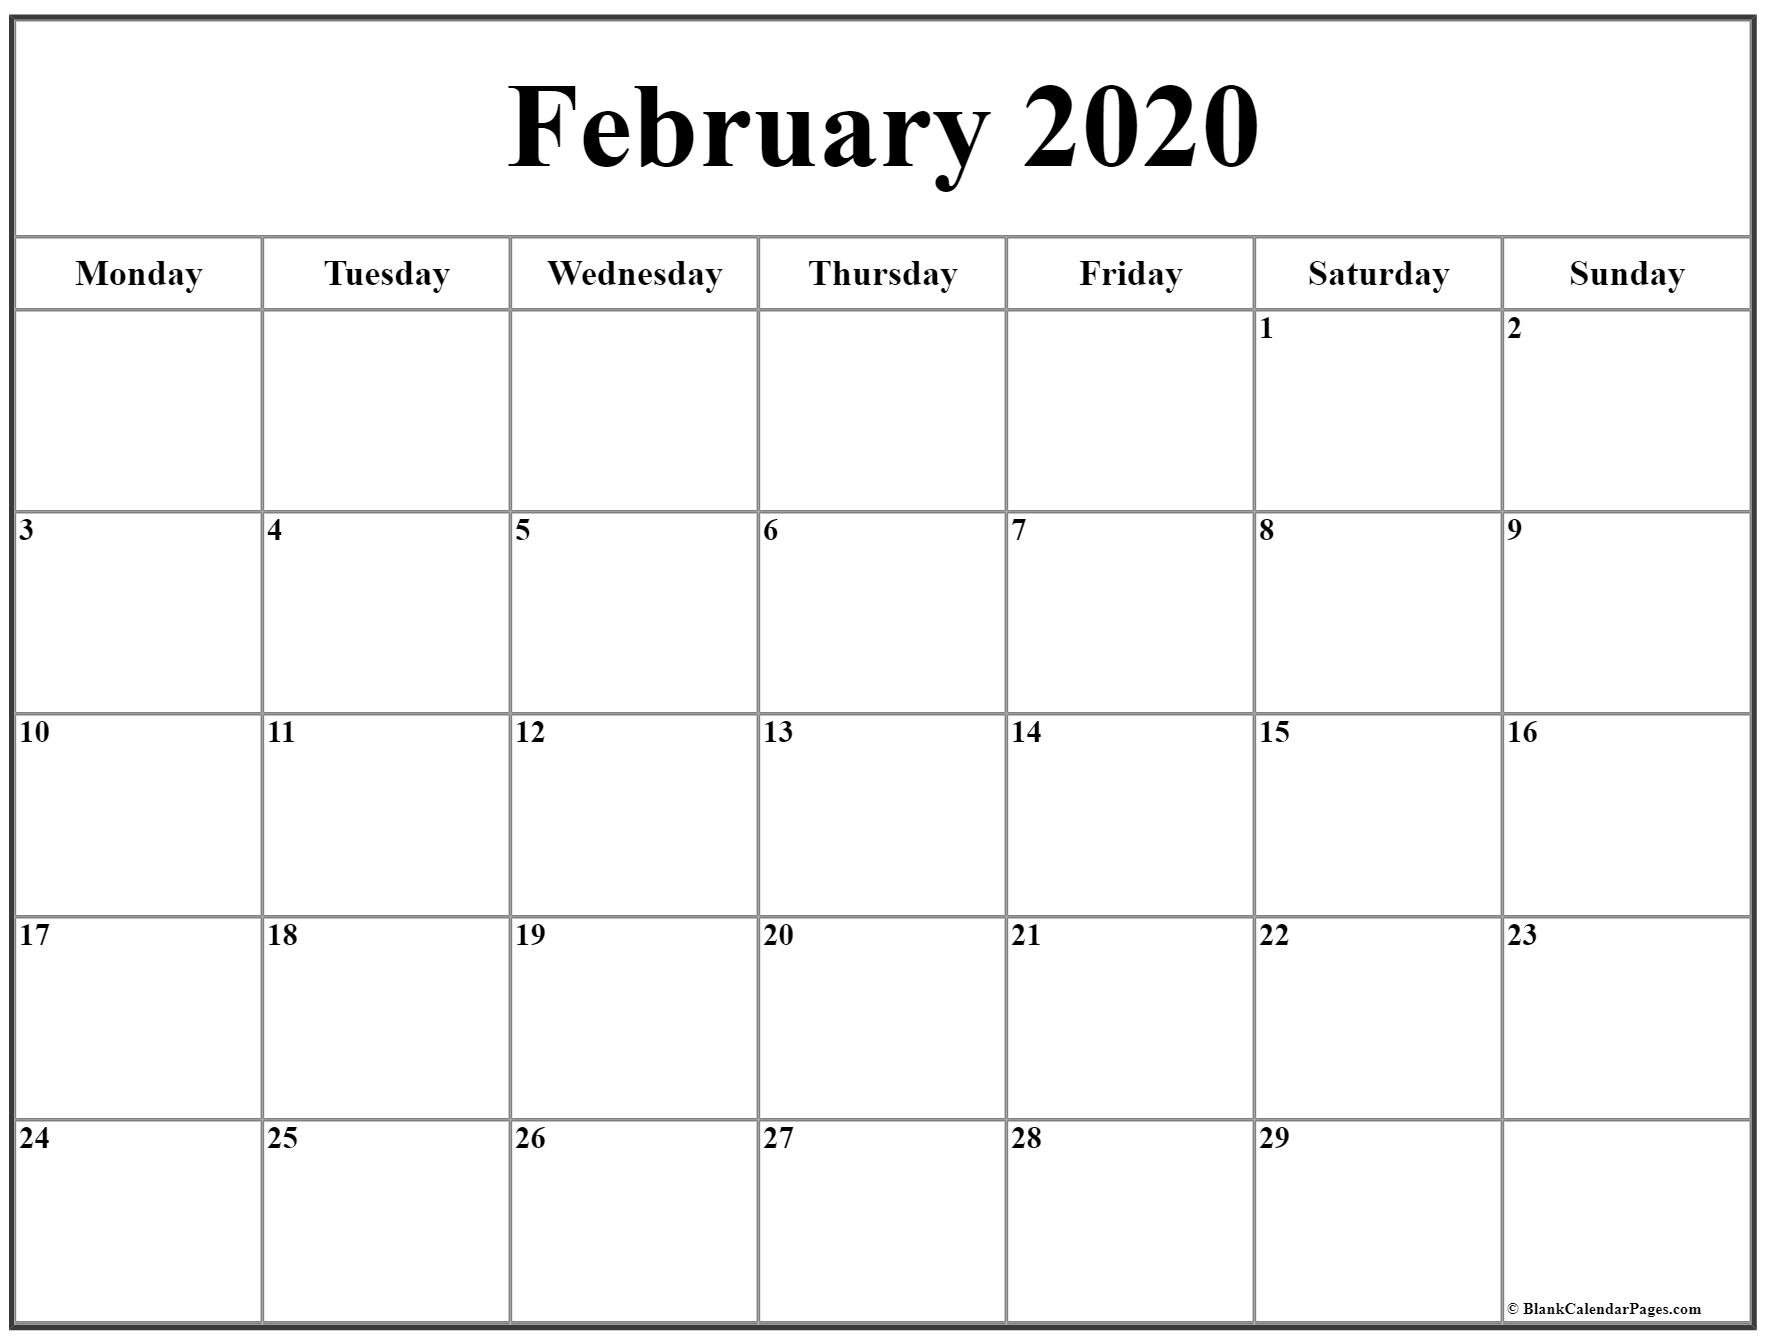 February 2020 Monday Calendar | Monday To Sunday for 2020 Calendar That Begins On Monday